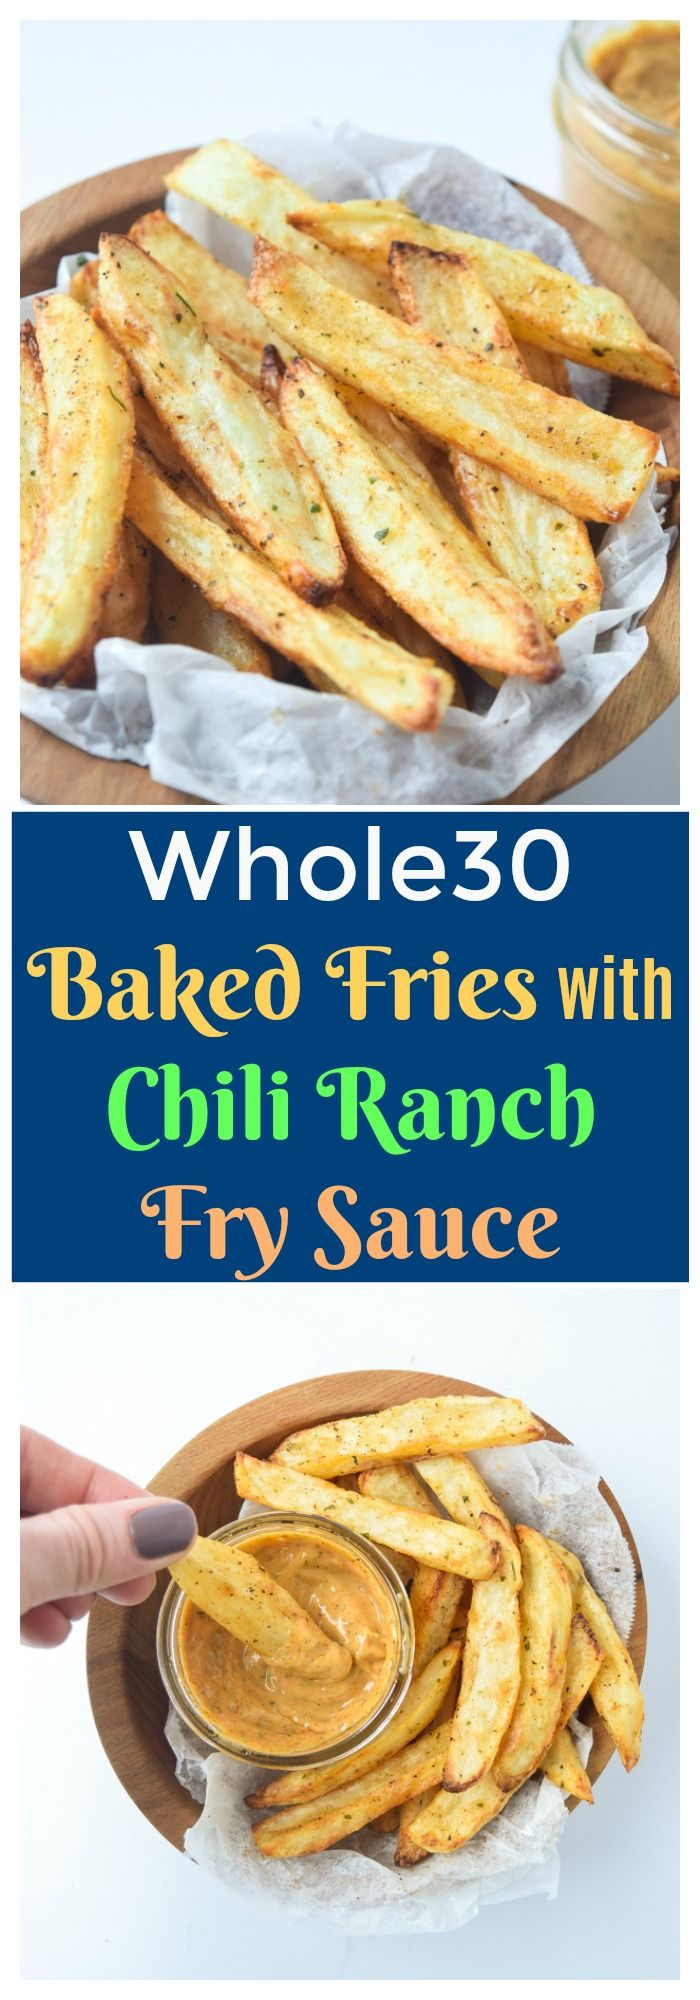 Whole30 Baked Fries with Chili Ranch Fry Sauce (Whole30 Paleo) - a winning combo of crispy baked fries and flavor packed dipping sauce that is Whole30 compliant! | tastythin.com